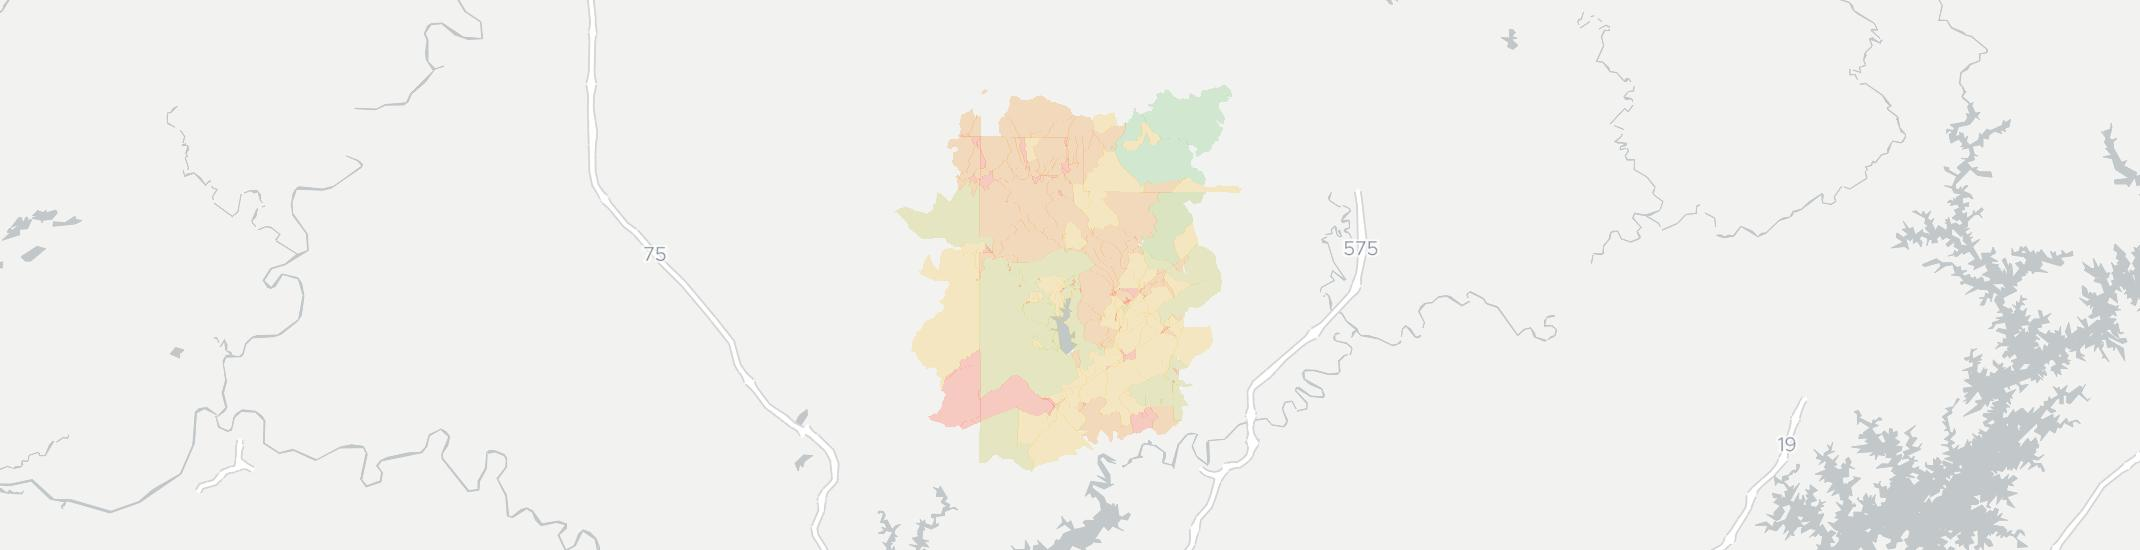 Waleska Internet Competition Map. Click for interactive map.